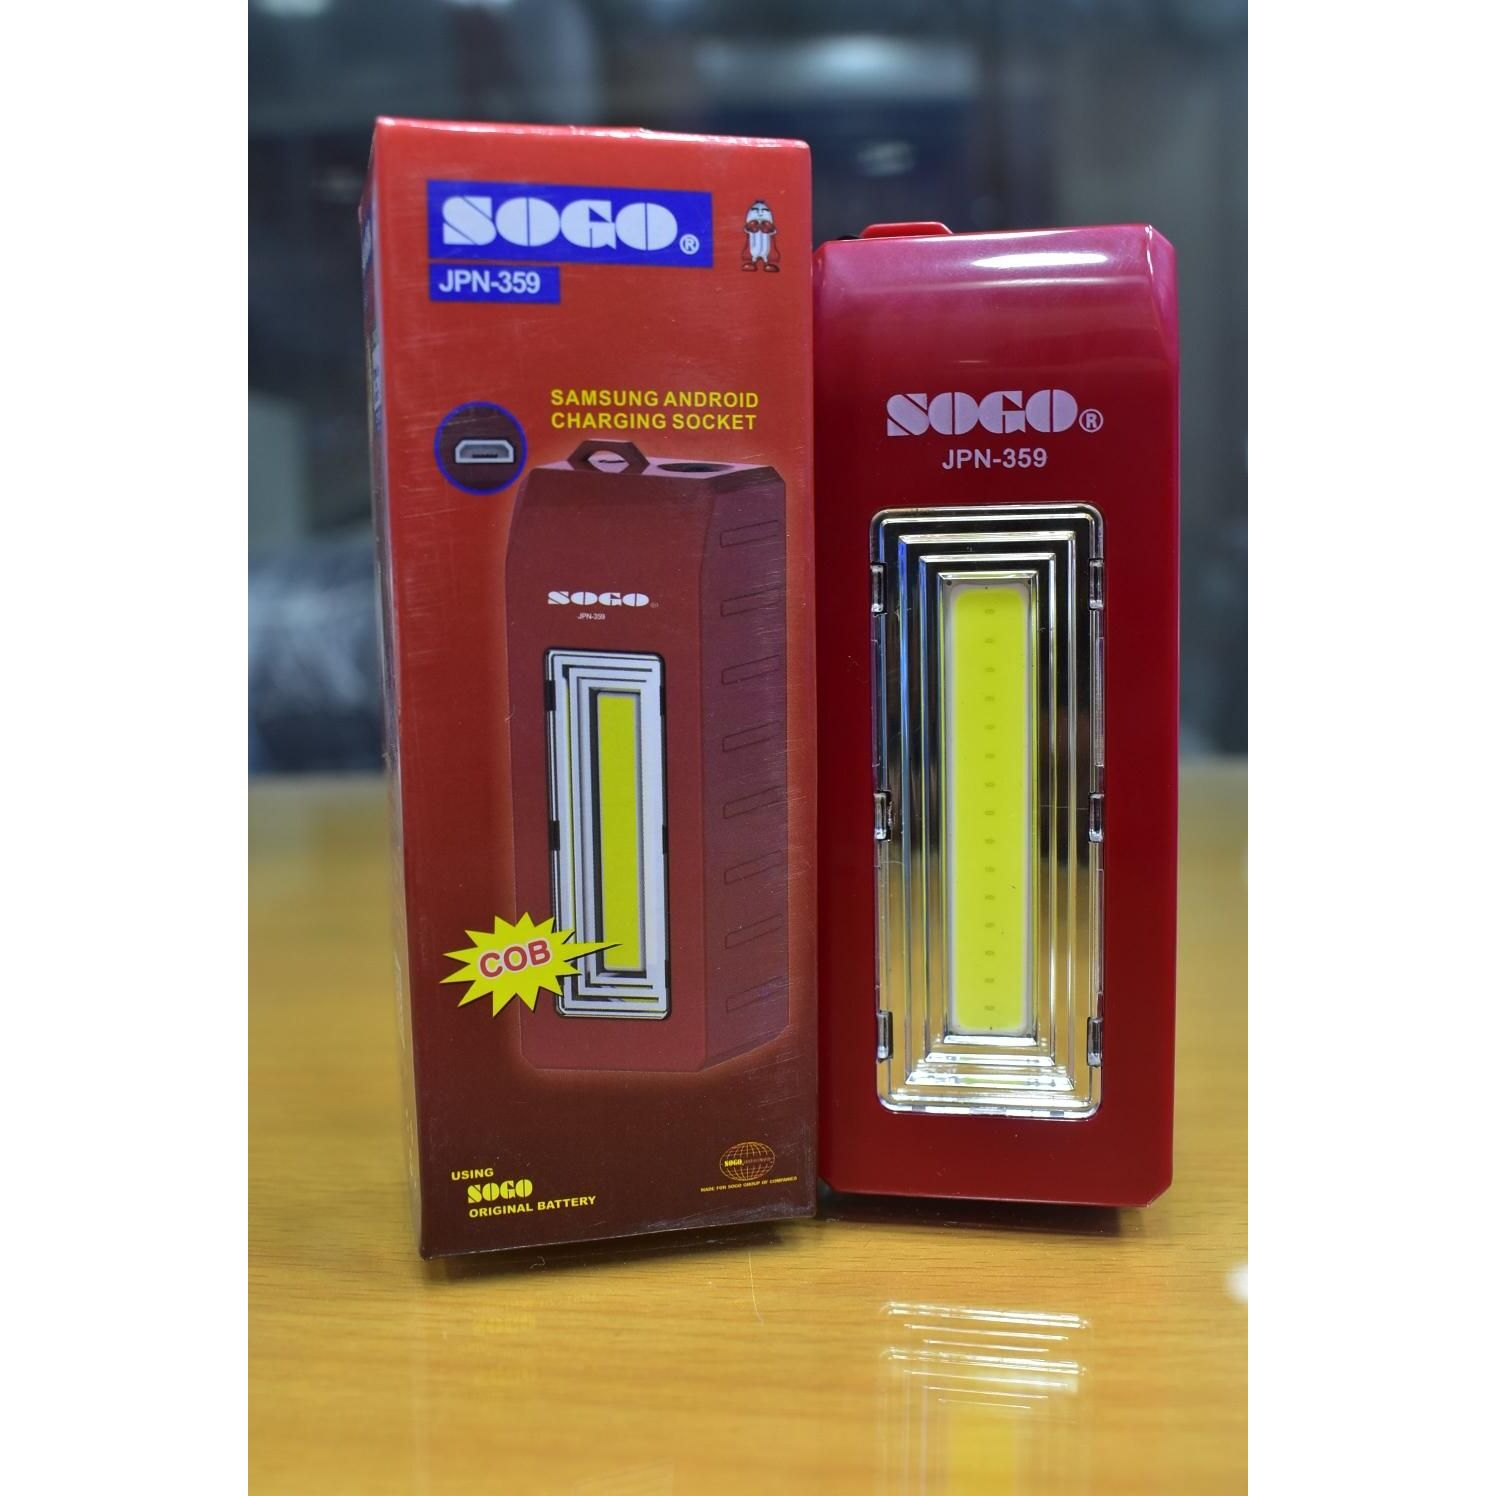 SOGO JPN 359 LED TORCH LIGHT